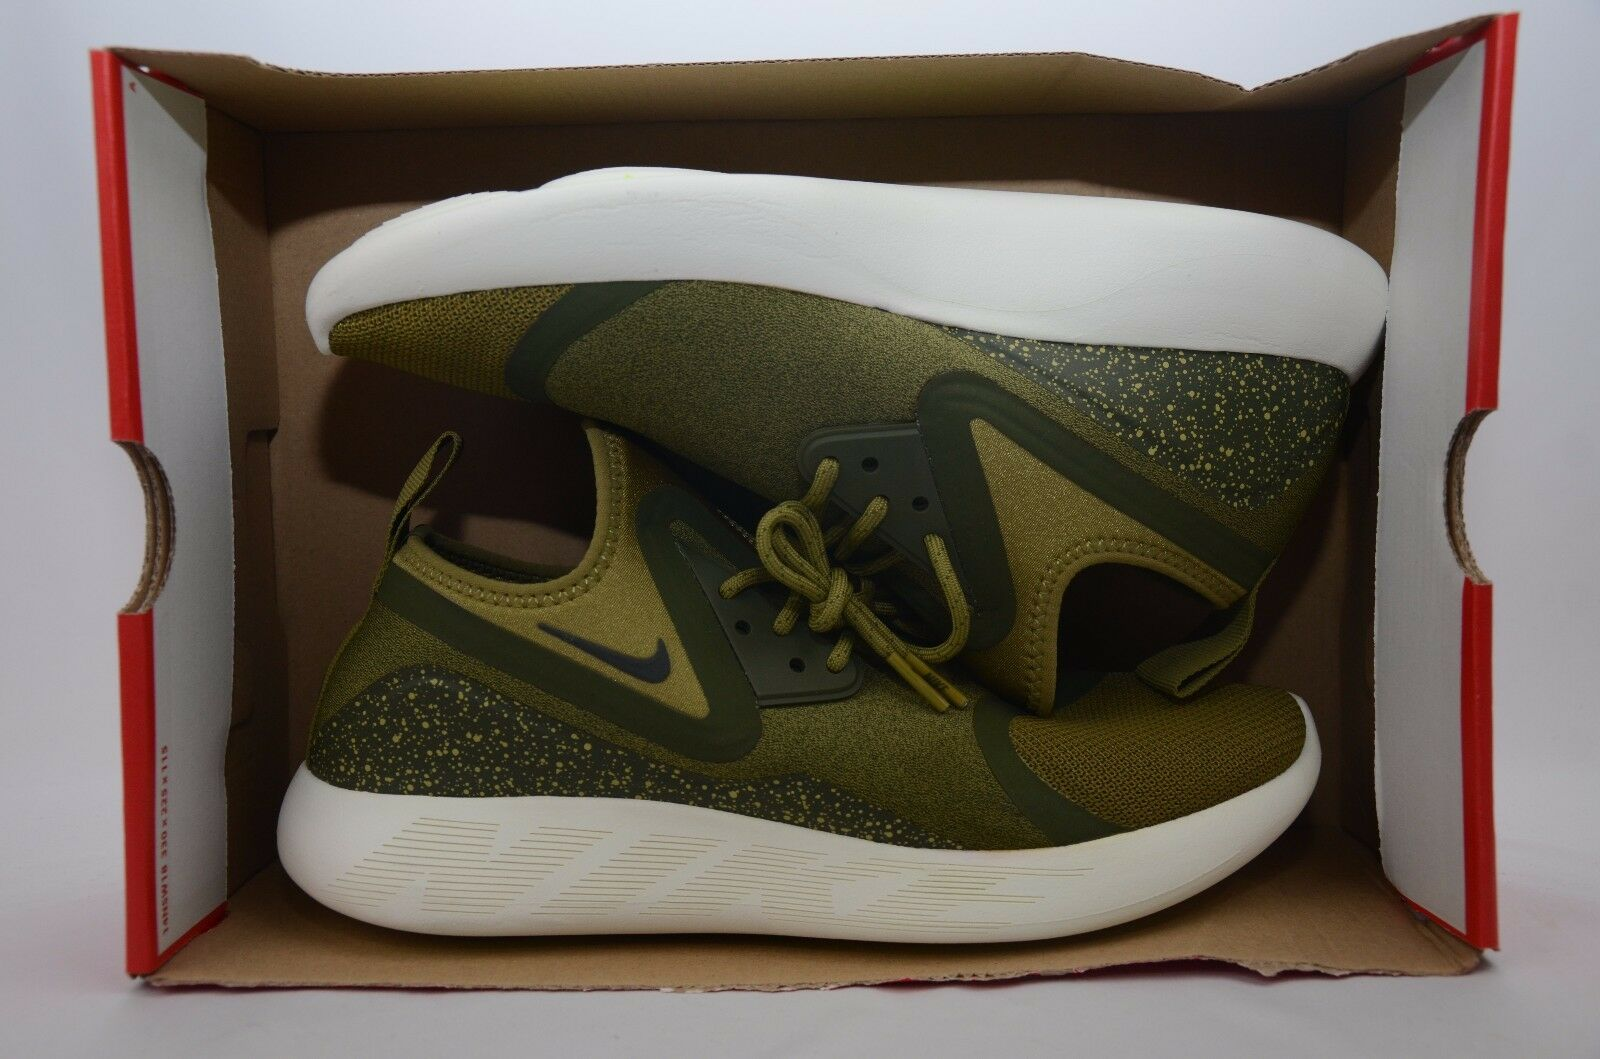 Nike Lunarcharge Essential Green Men's Size 10 New New New in Box NO Top Lid 923619 300 f873dc